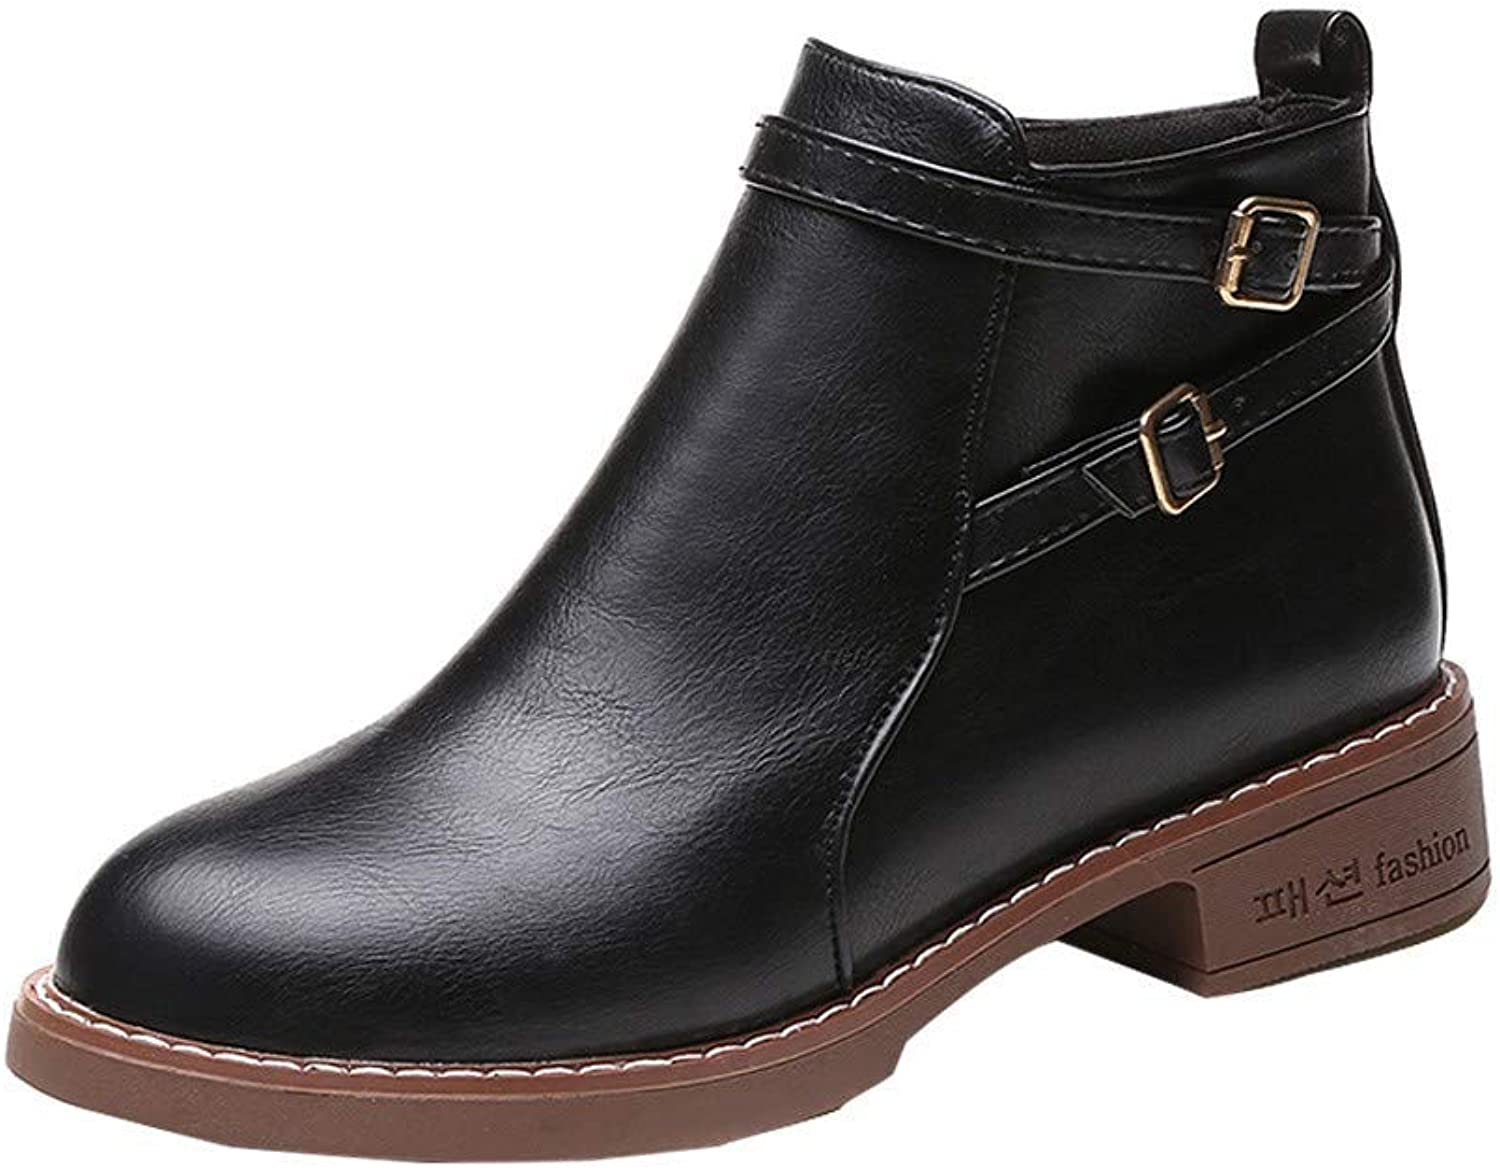 JaHGDU Women Fashion Solid Leather Medium High Closure Thick Martin Boots Round Toe Brown shoes Black Cosy Wild Casual Quality Super Elegant Leisure for Womens